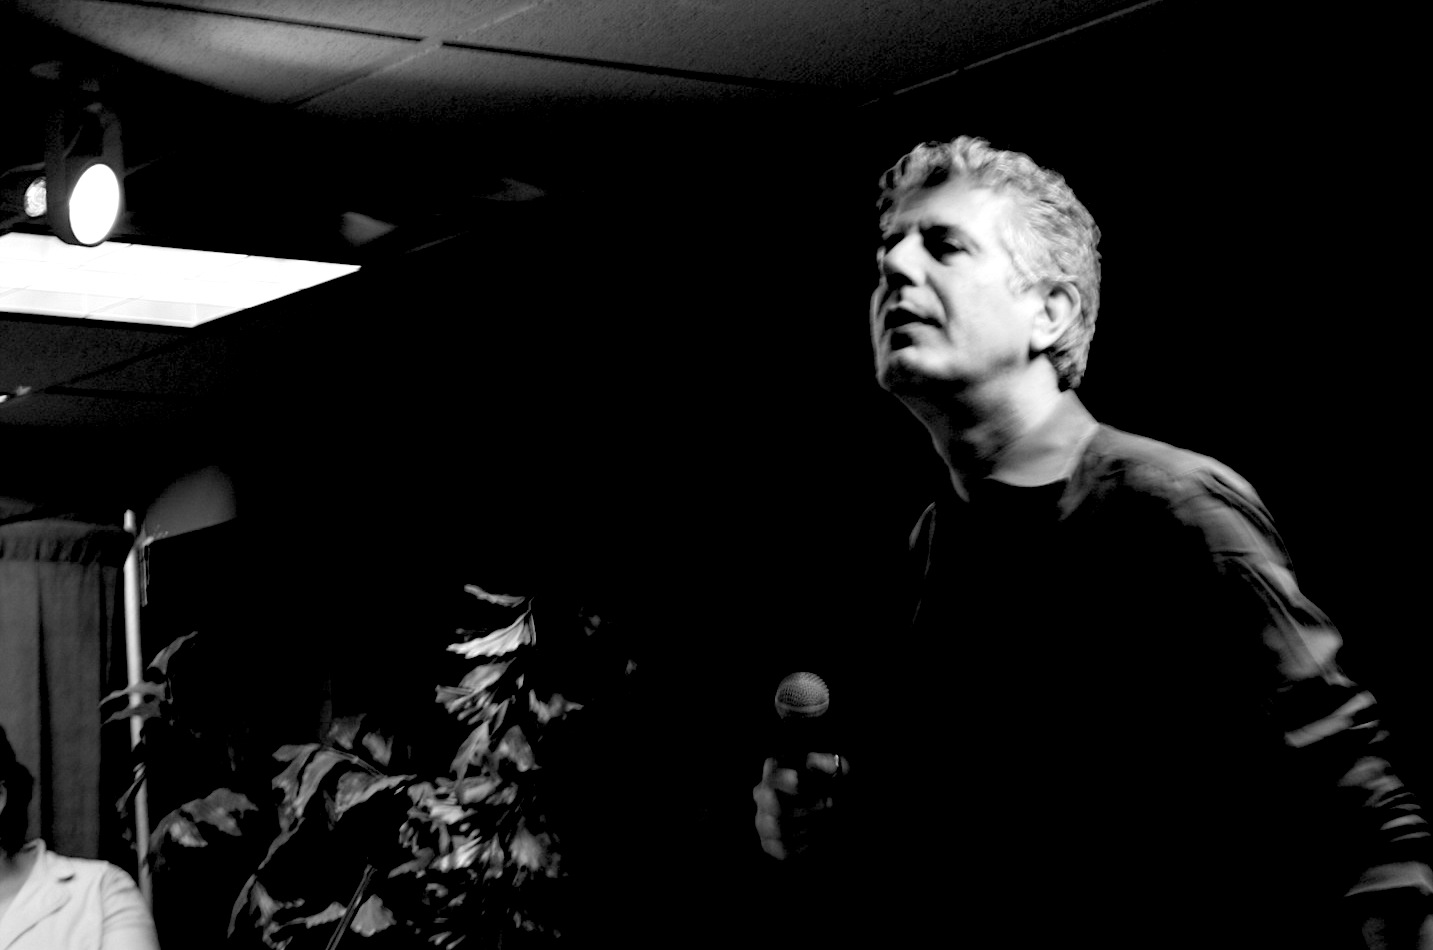 A Lost Interview with the Late Anthony Bourdain